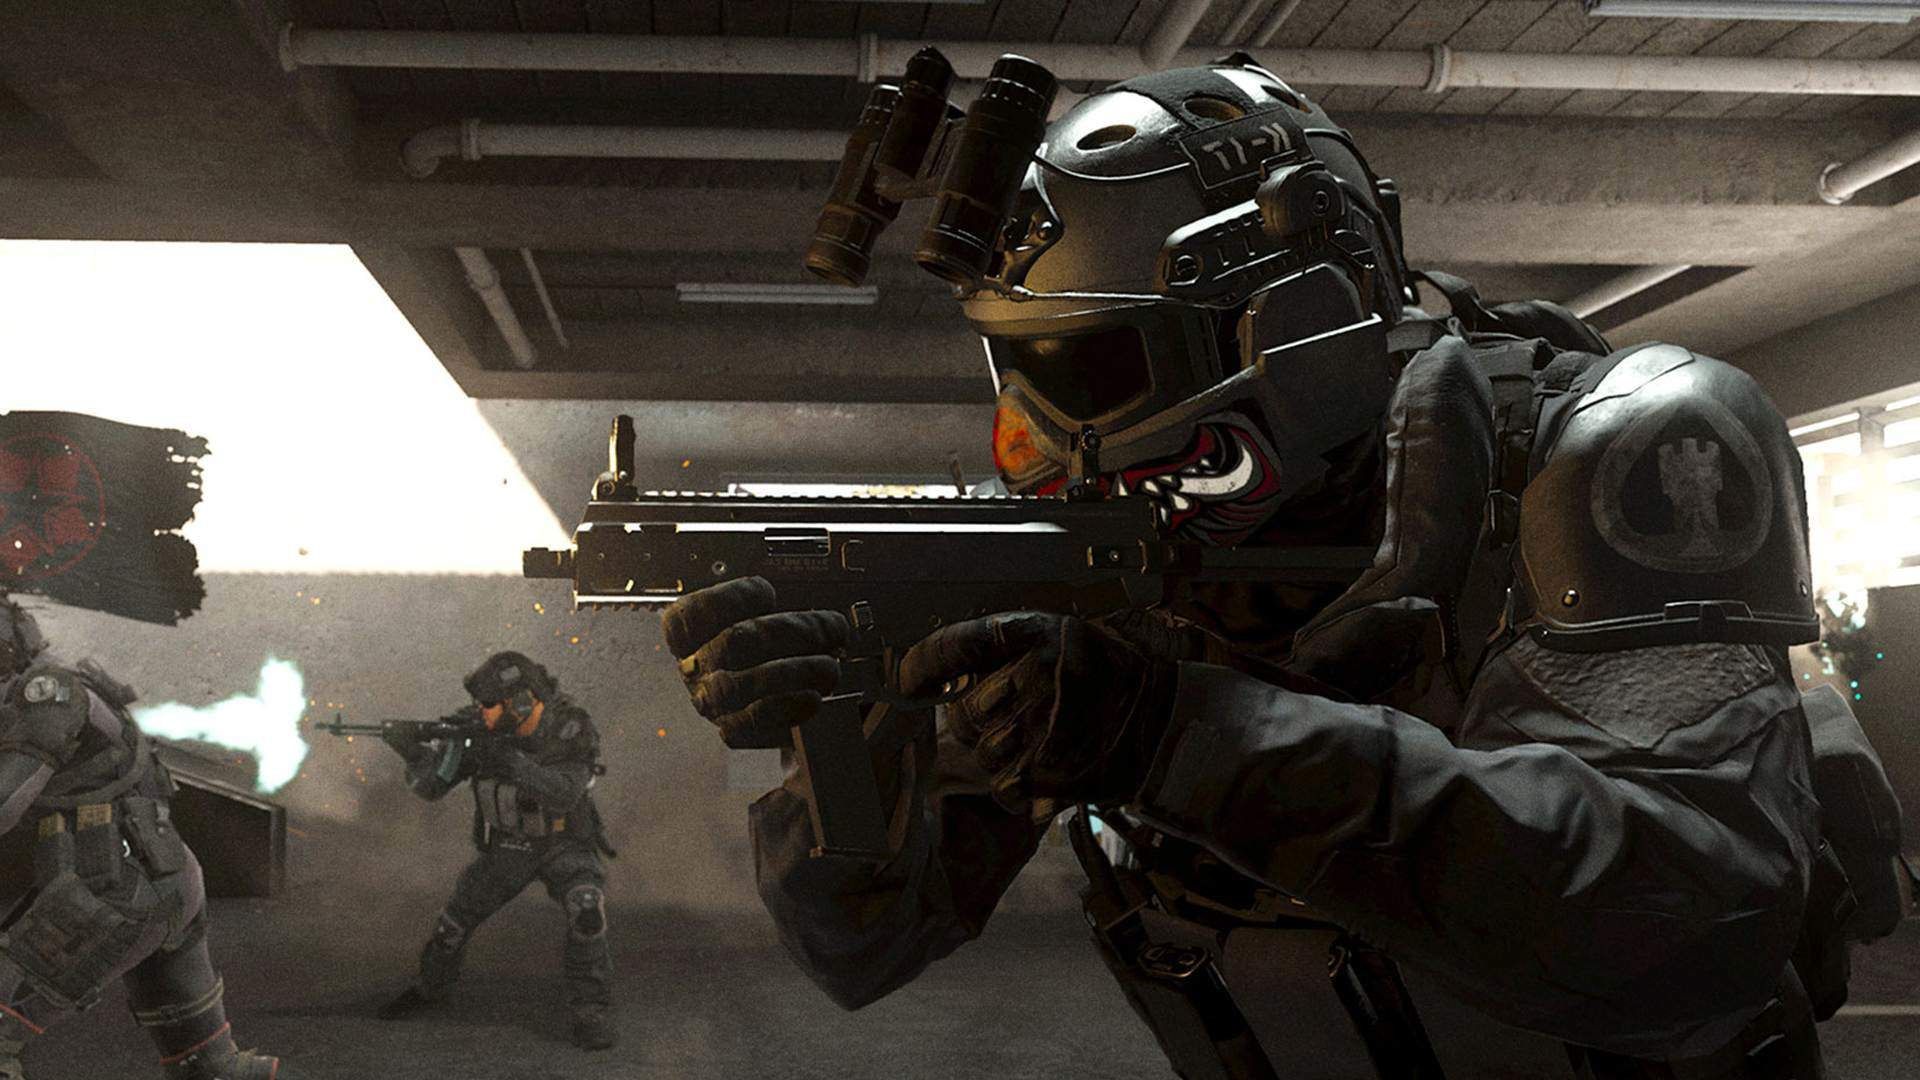 Call Of Duty Season 5 Patch Notes Include New Warzone Weapons